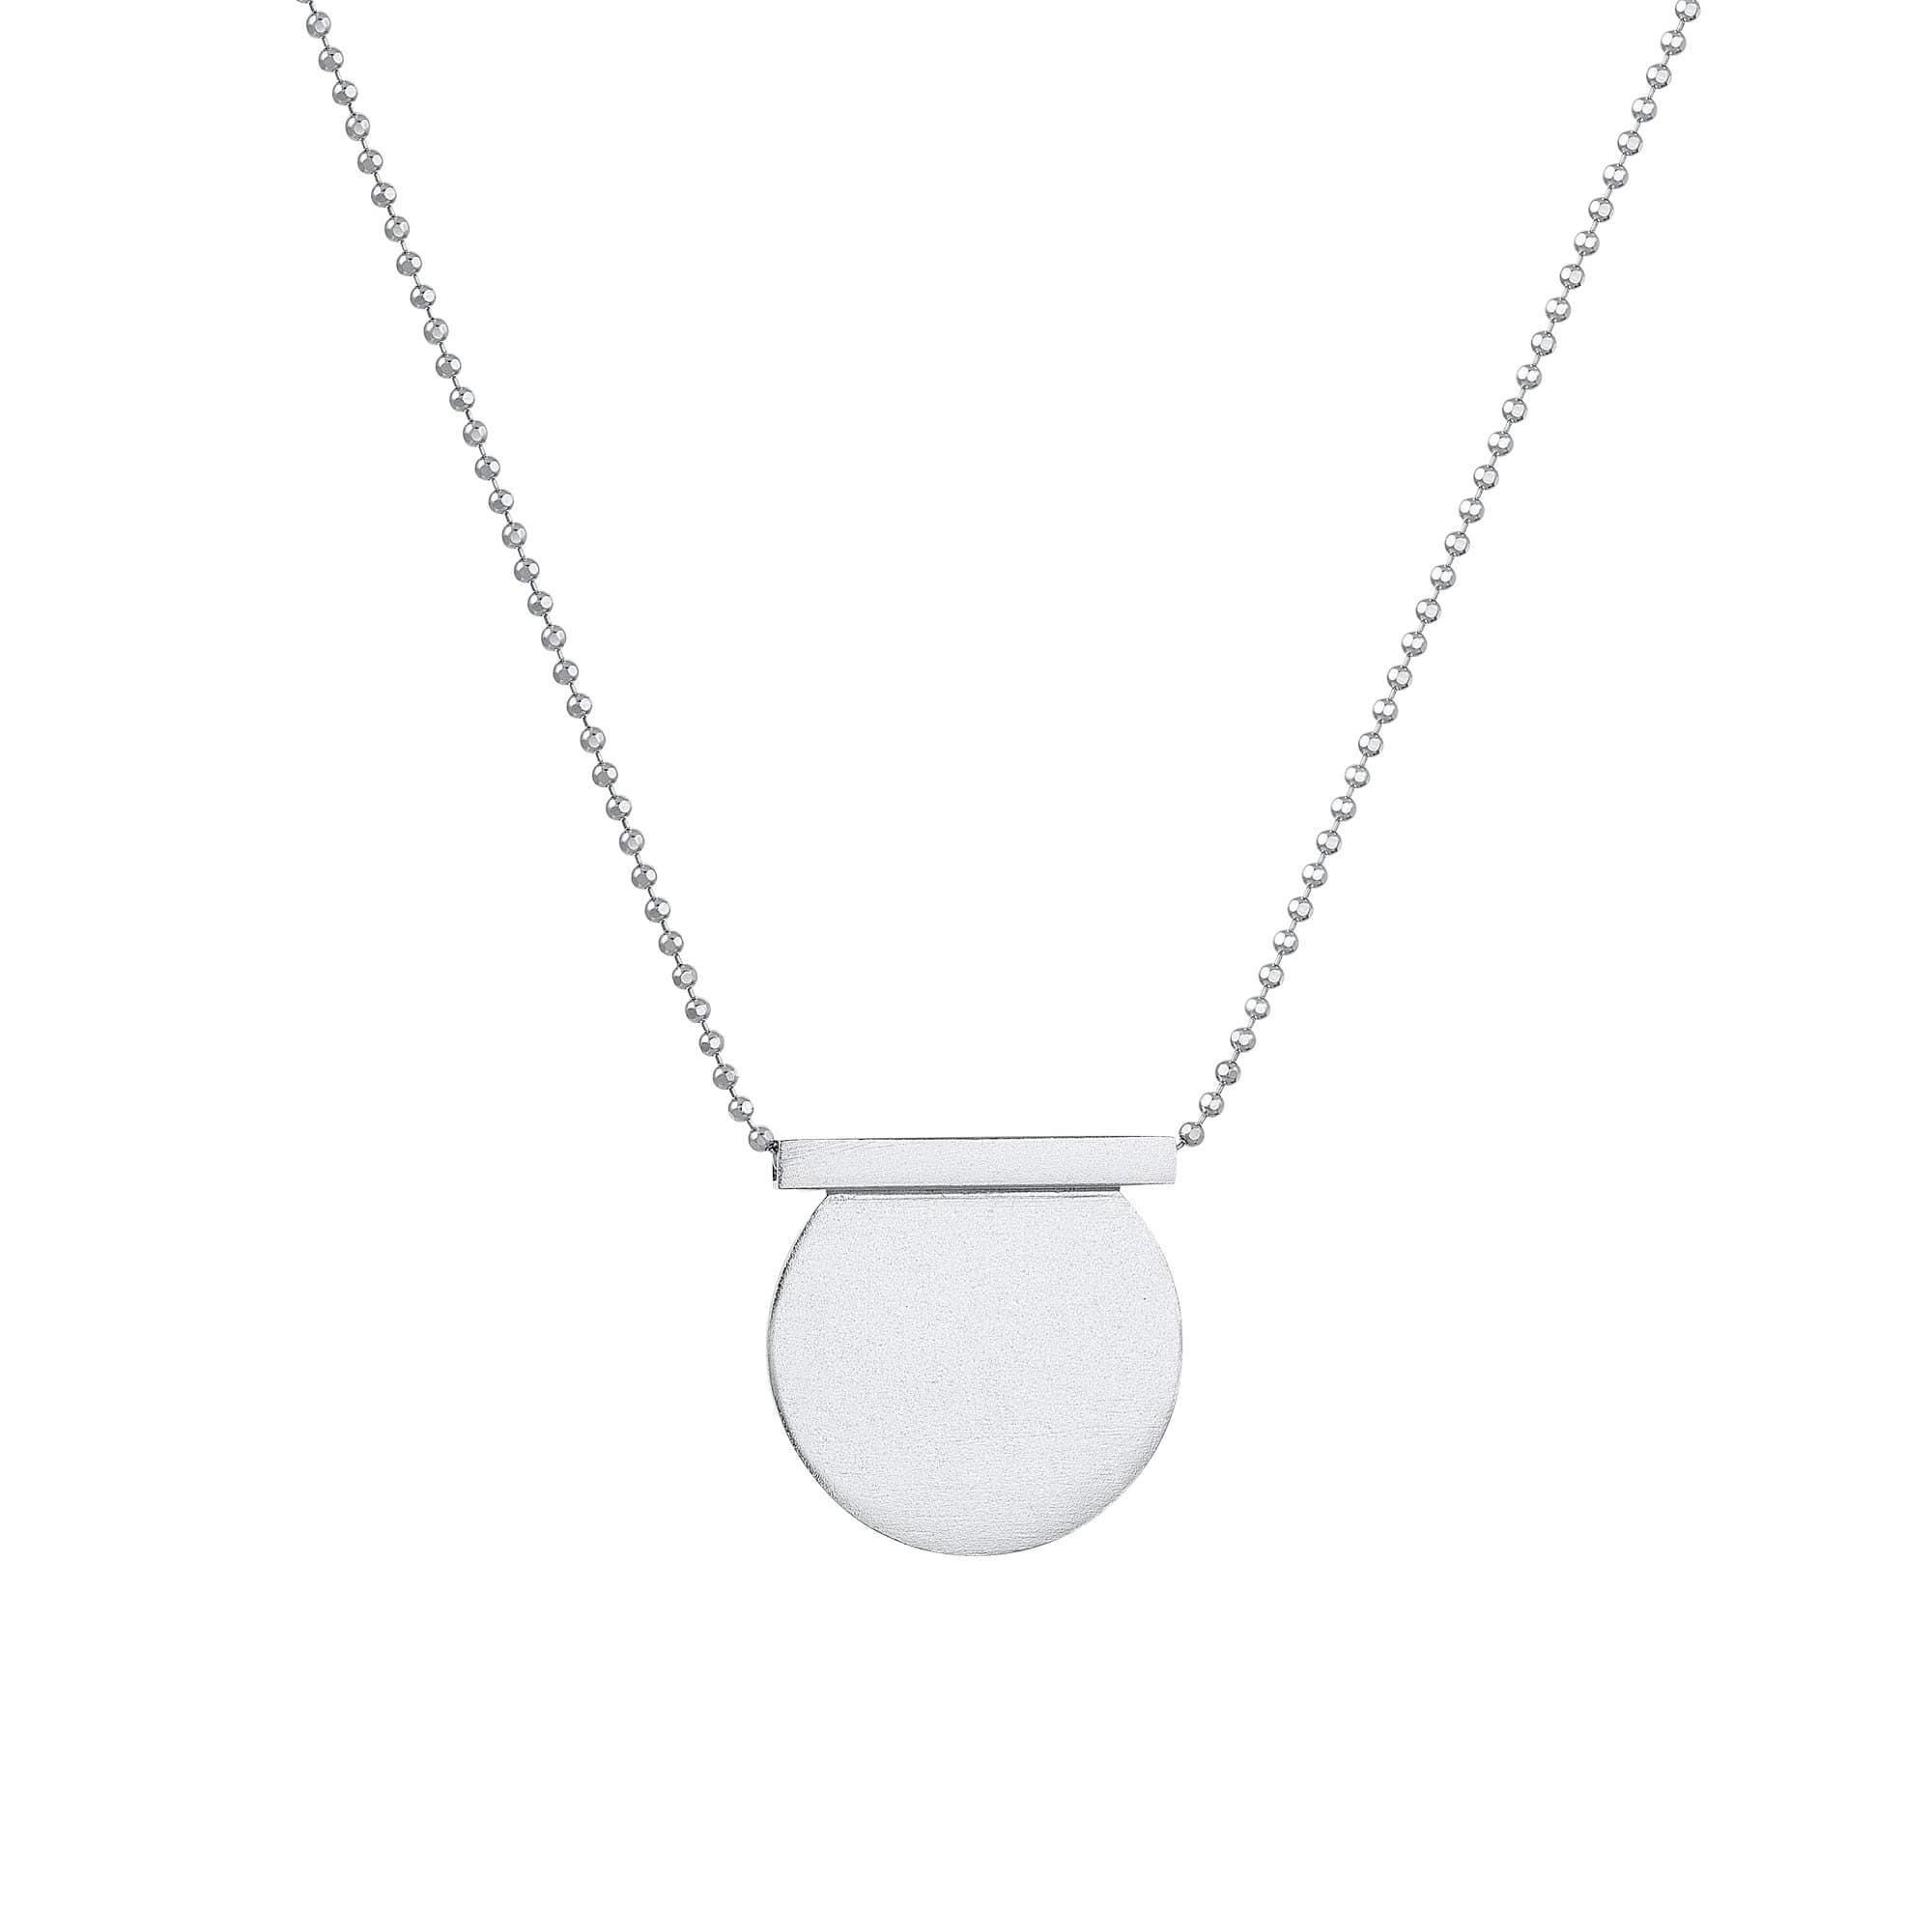 tothemetal Necklaces Cut Circle + Line Silver Necklace